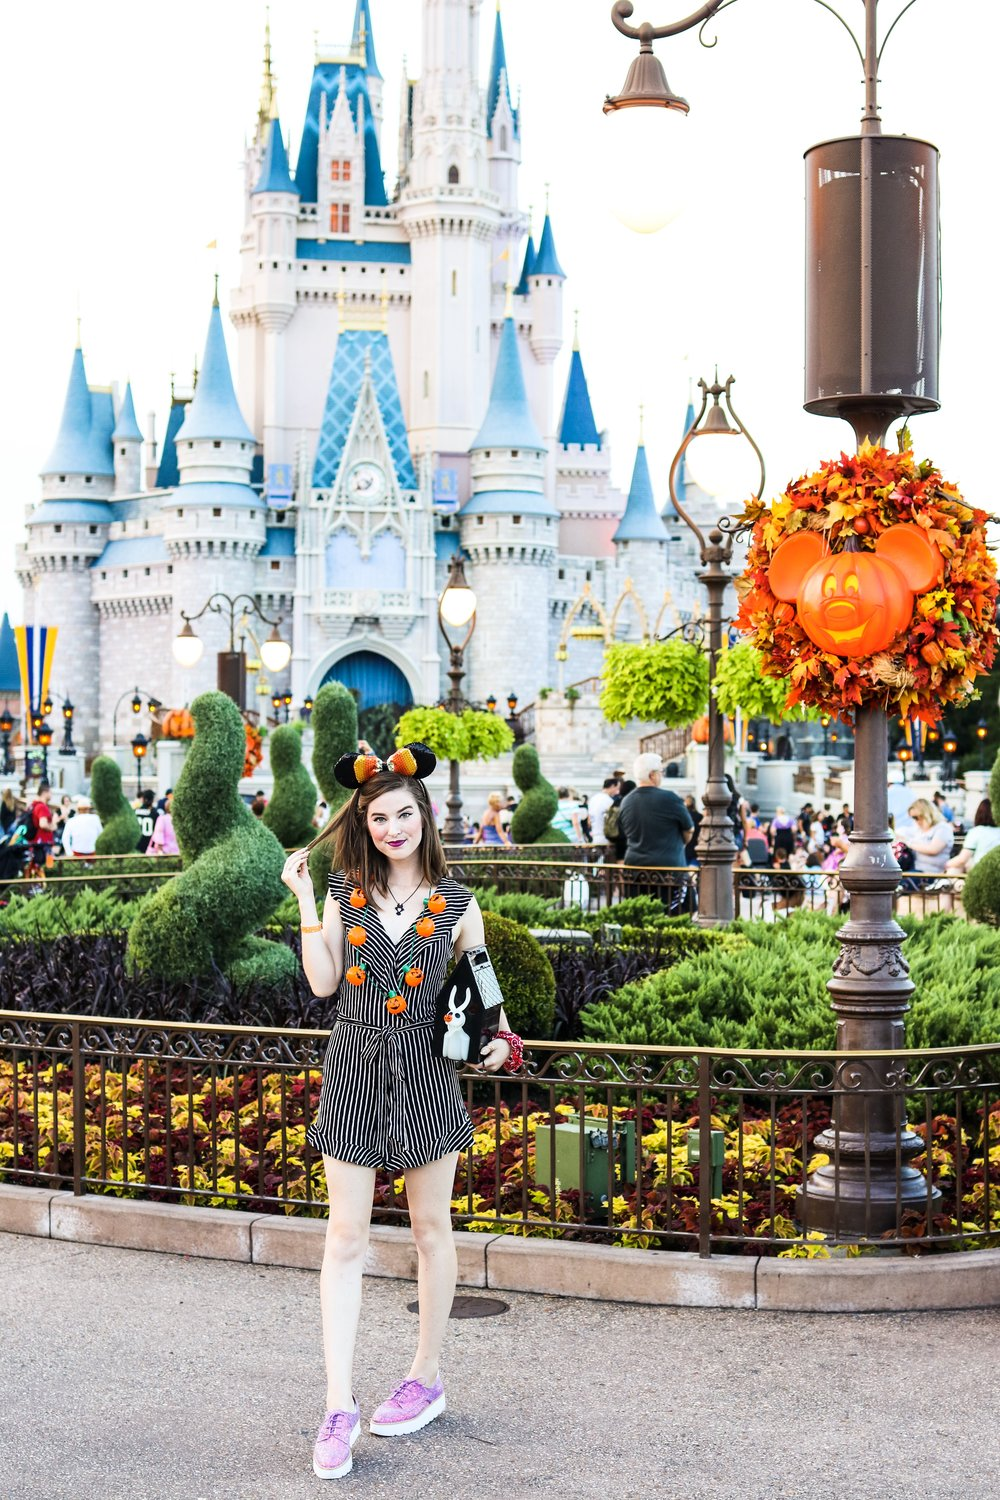 not so scary halloween in magic kingdom styled by magic